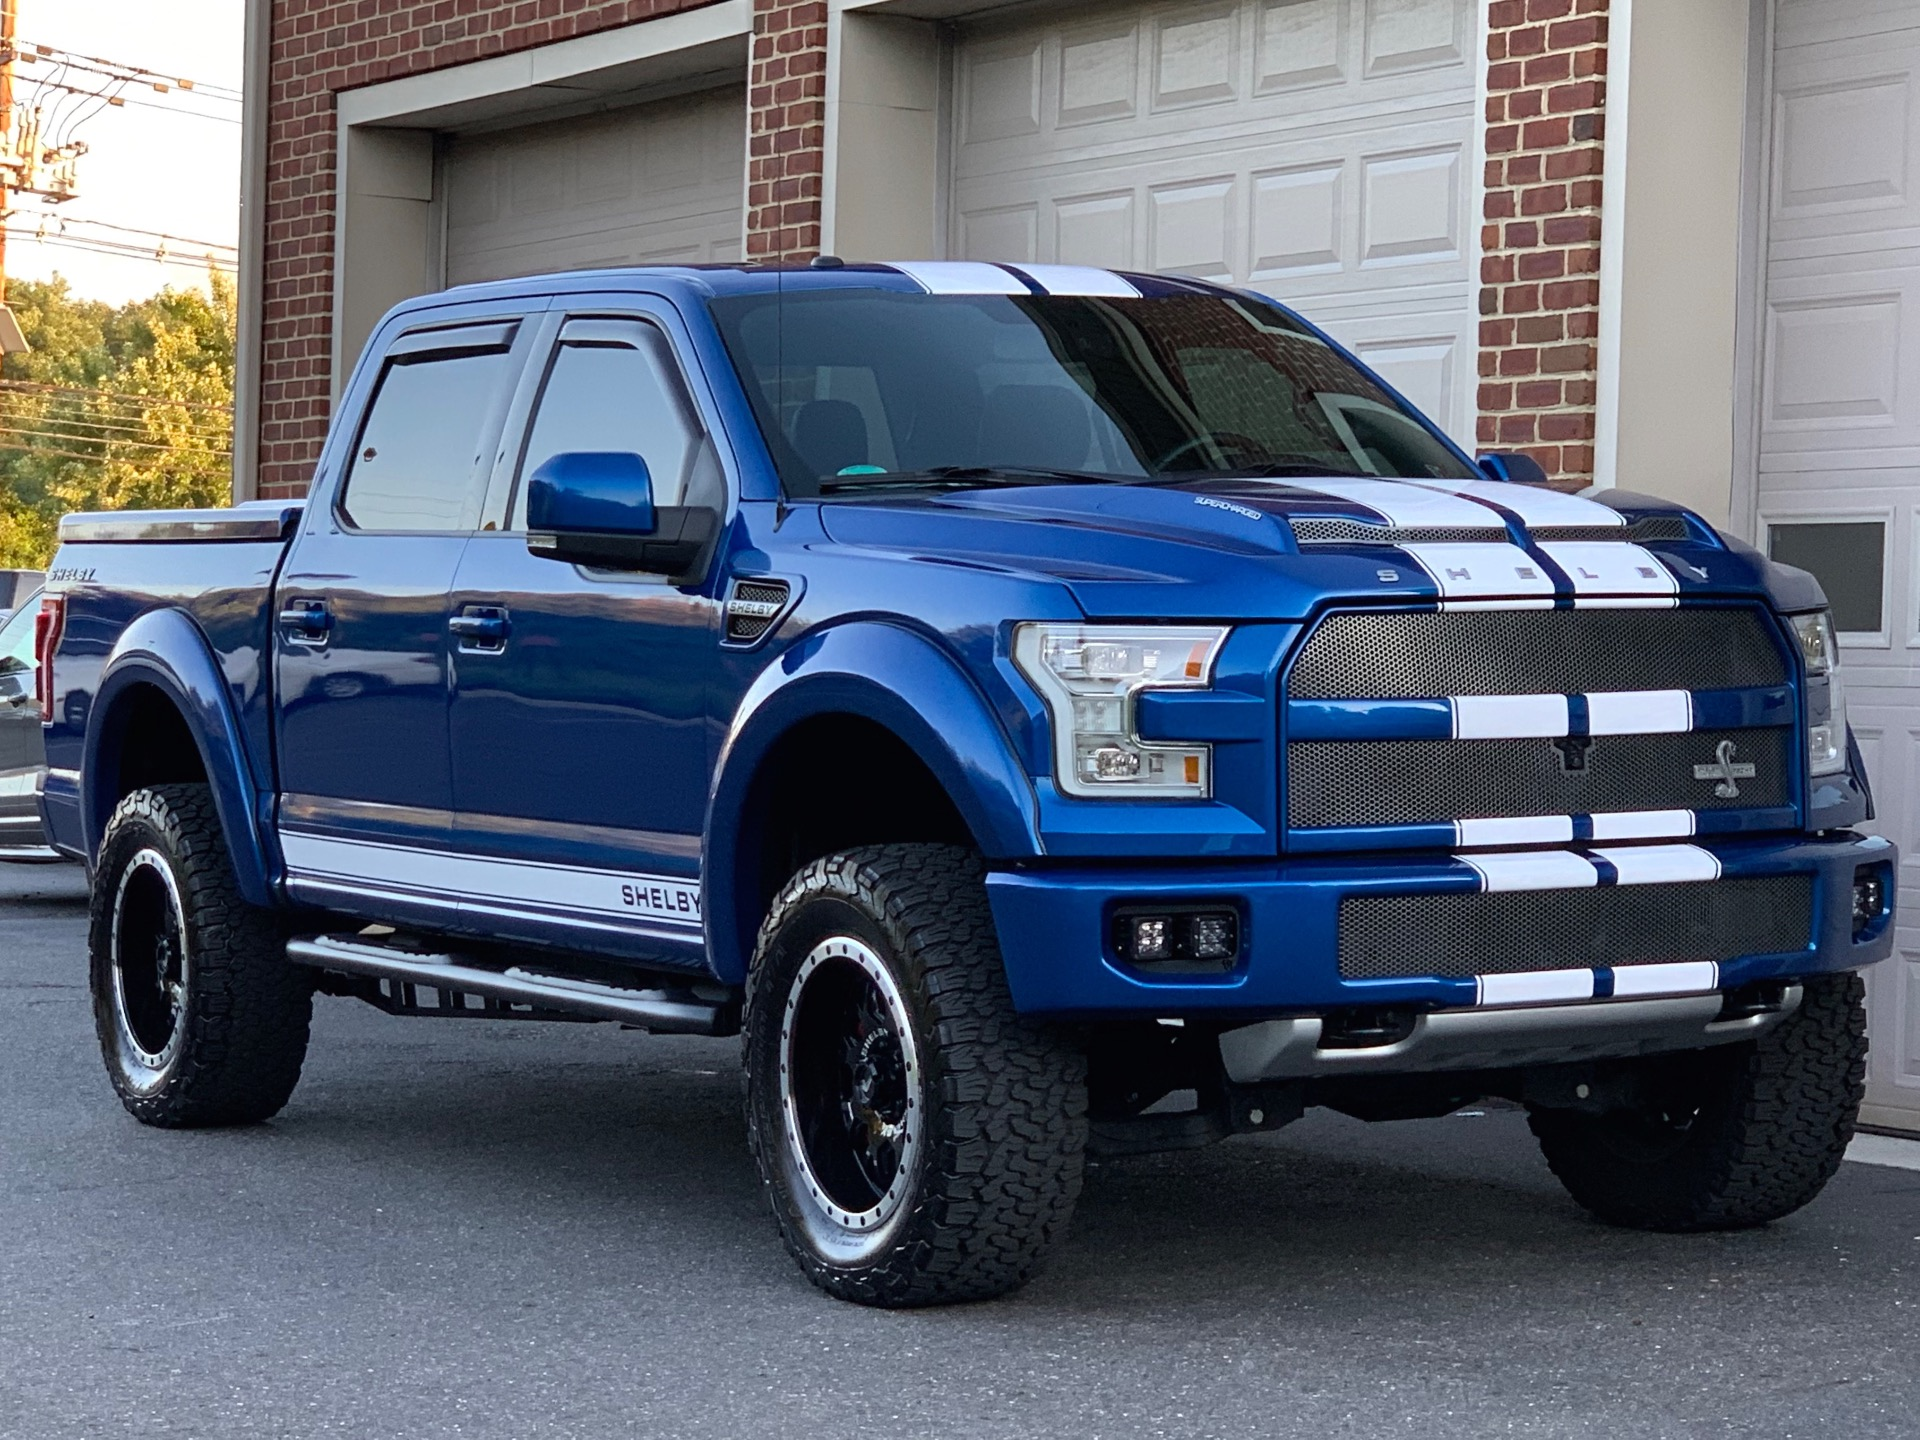 Used-2017-Ford-F-150-Lariat-SHELBY-750hp